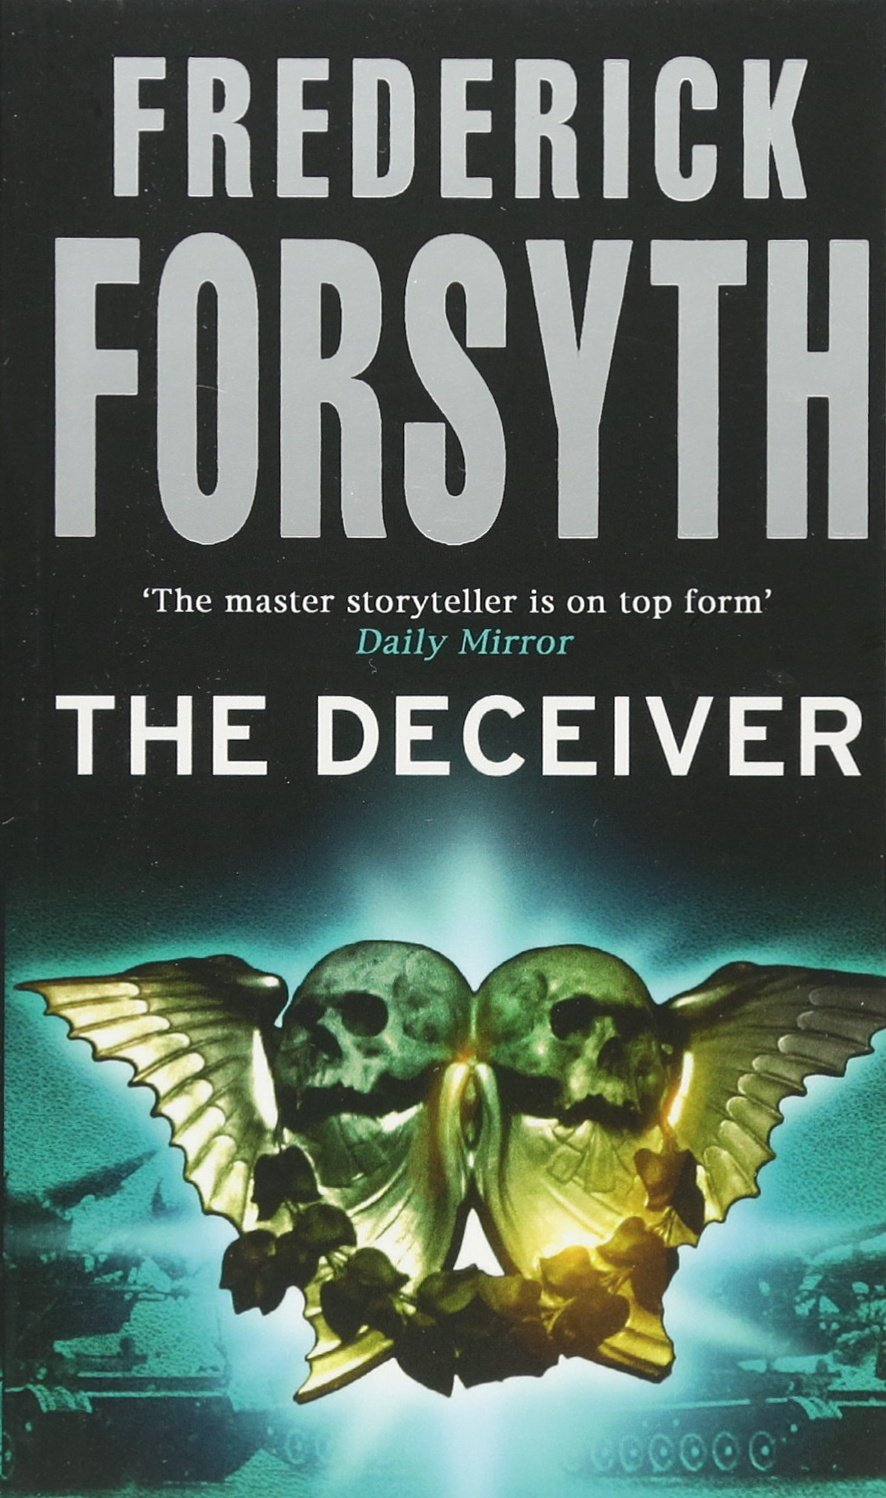 Amazon.in: Buy The Deceiver Book Online at Low Prices in India ...